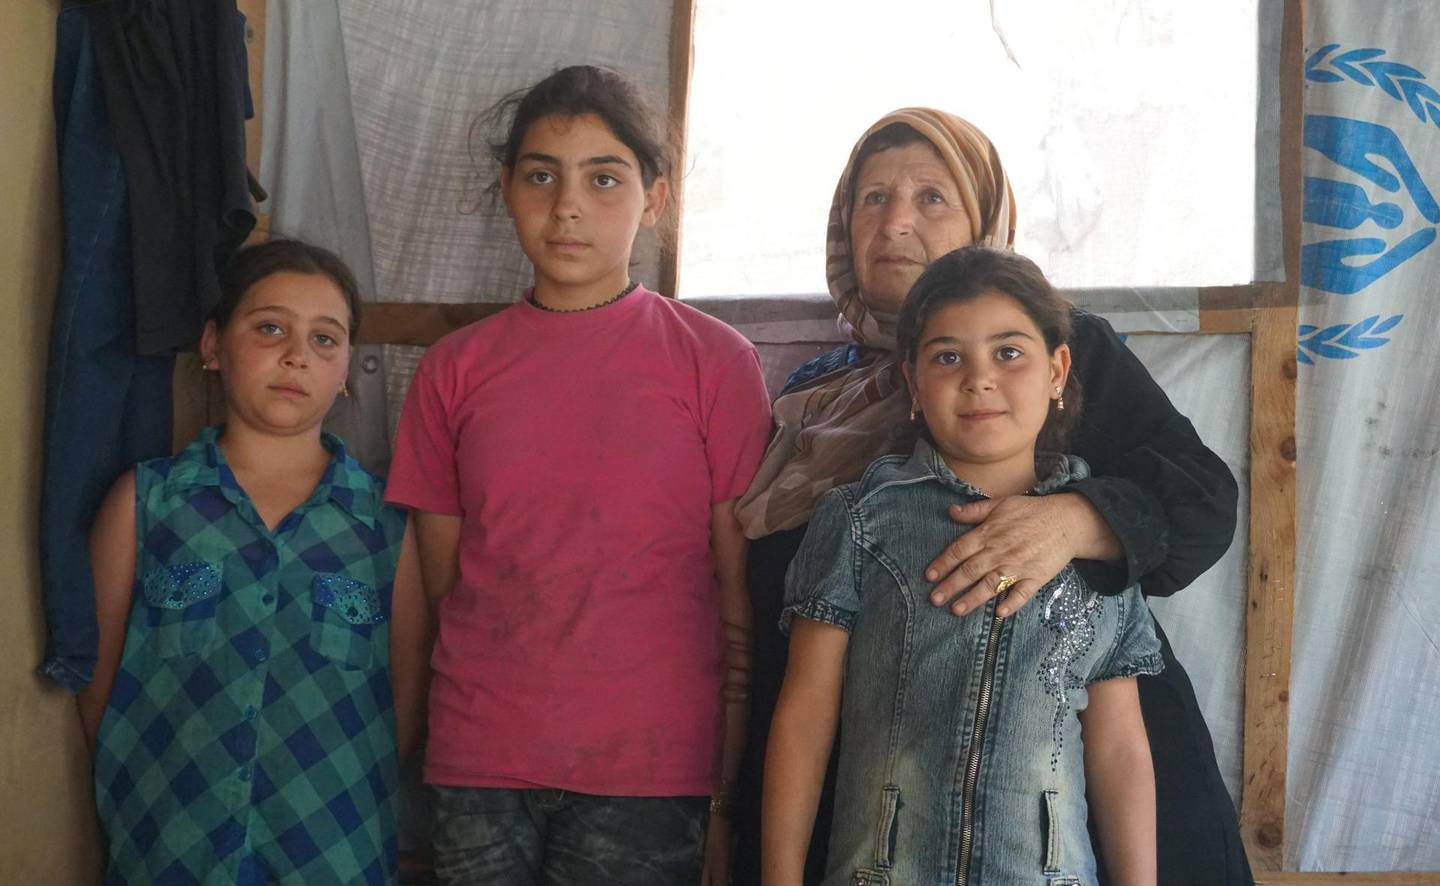 Sobhieh Shakr Alia and her granddaughters inside their home before its destruction in Qarya Hayat camp, Arsal. Sunniva Rose / The National